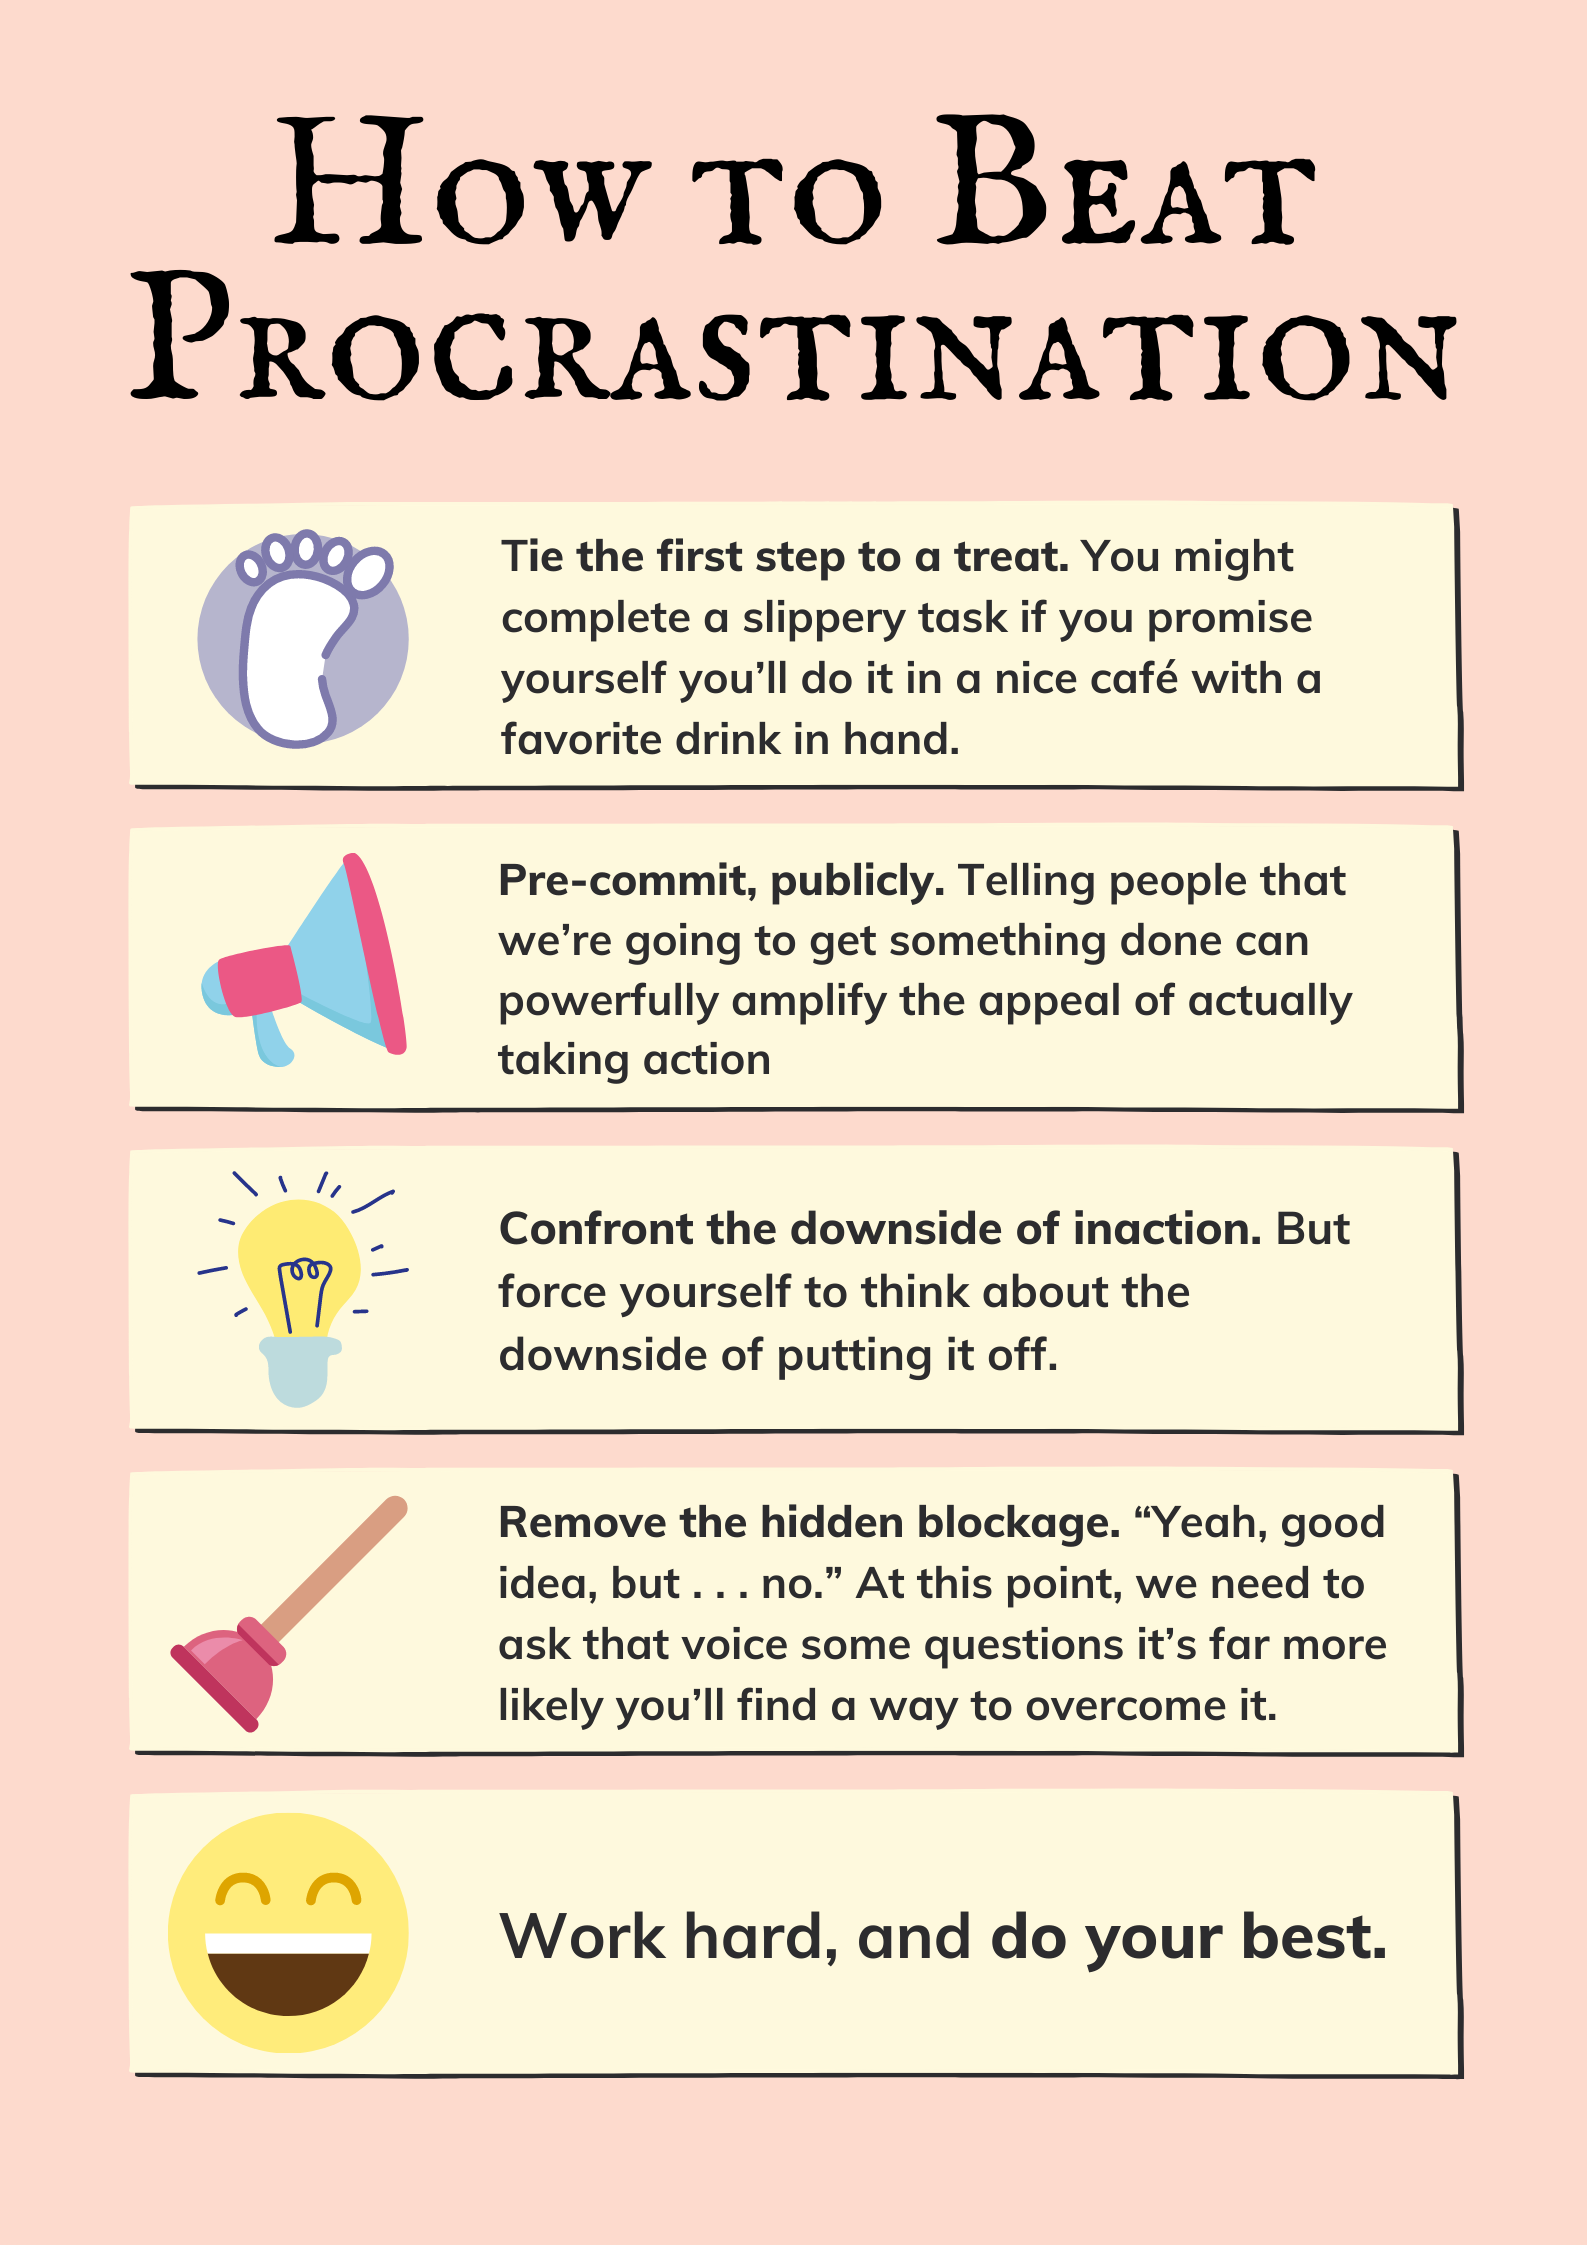 How to Beat Procrastination.png